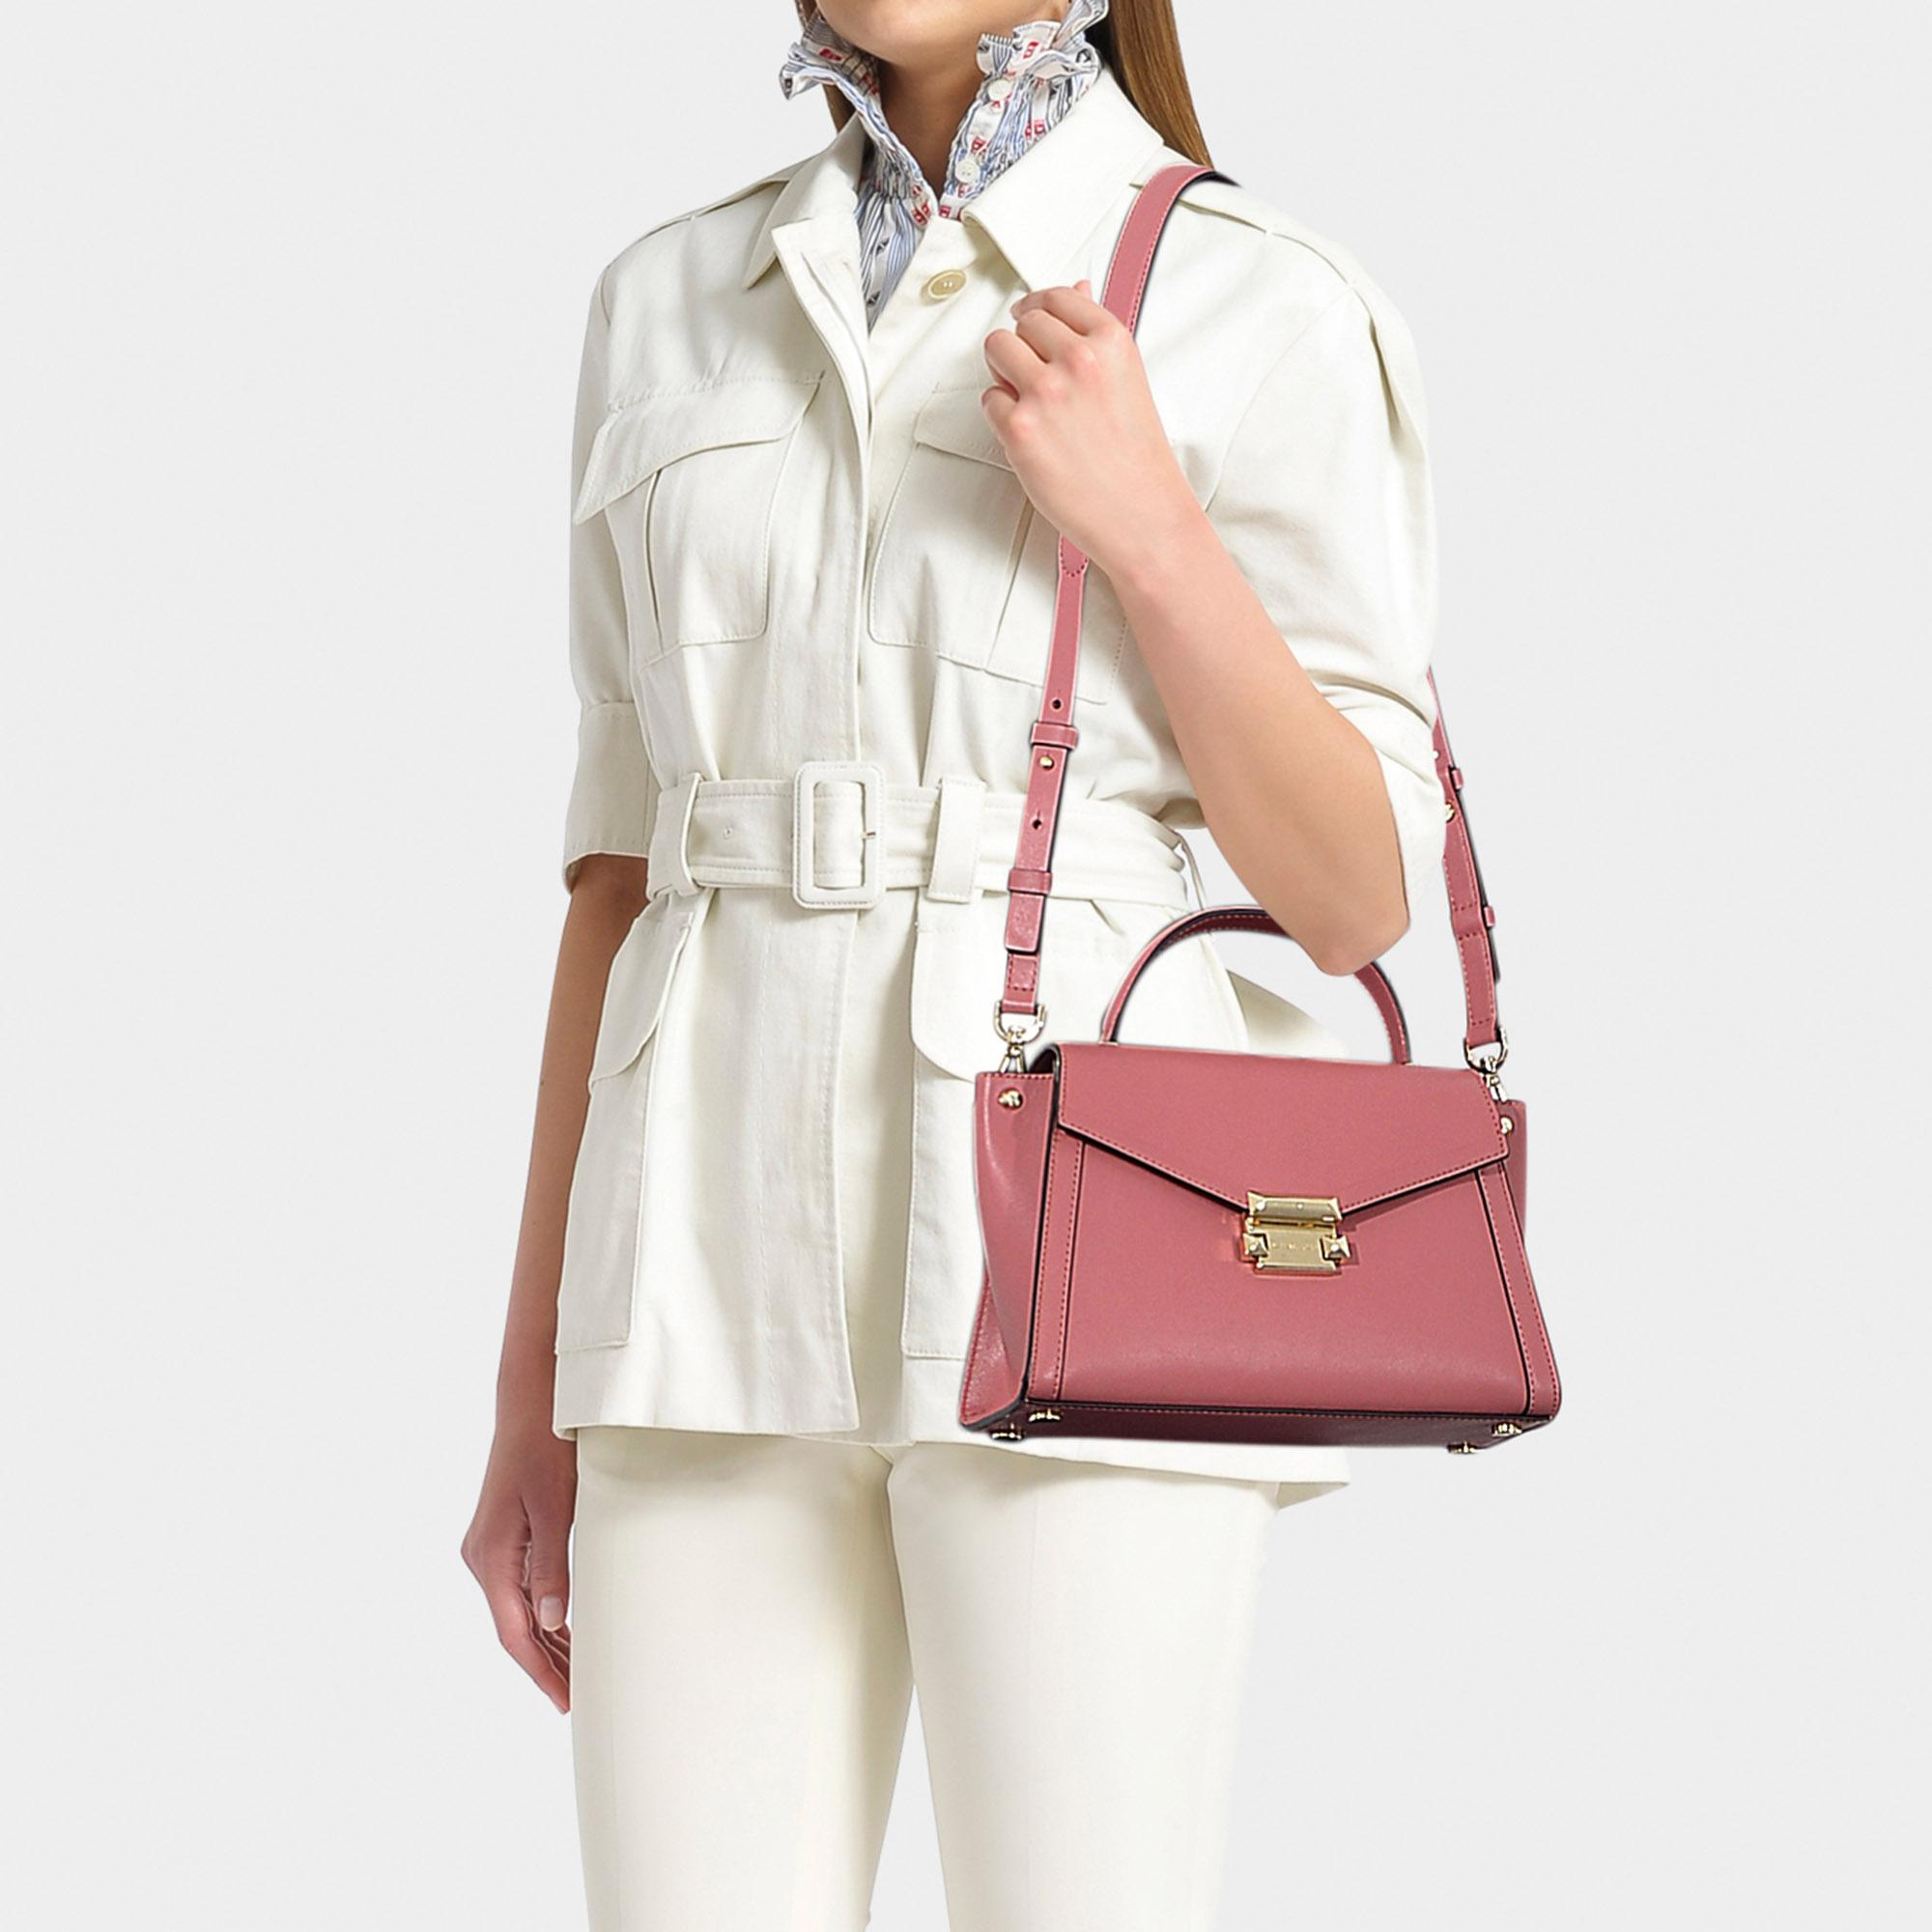 7ed49bc1f7b7 MICHAEL Michael Kors - Pink Whitney Medium Top Handle Satchel Bag In Rose  Calfskin - Lyst. View fullscreen